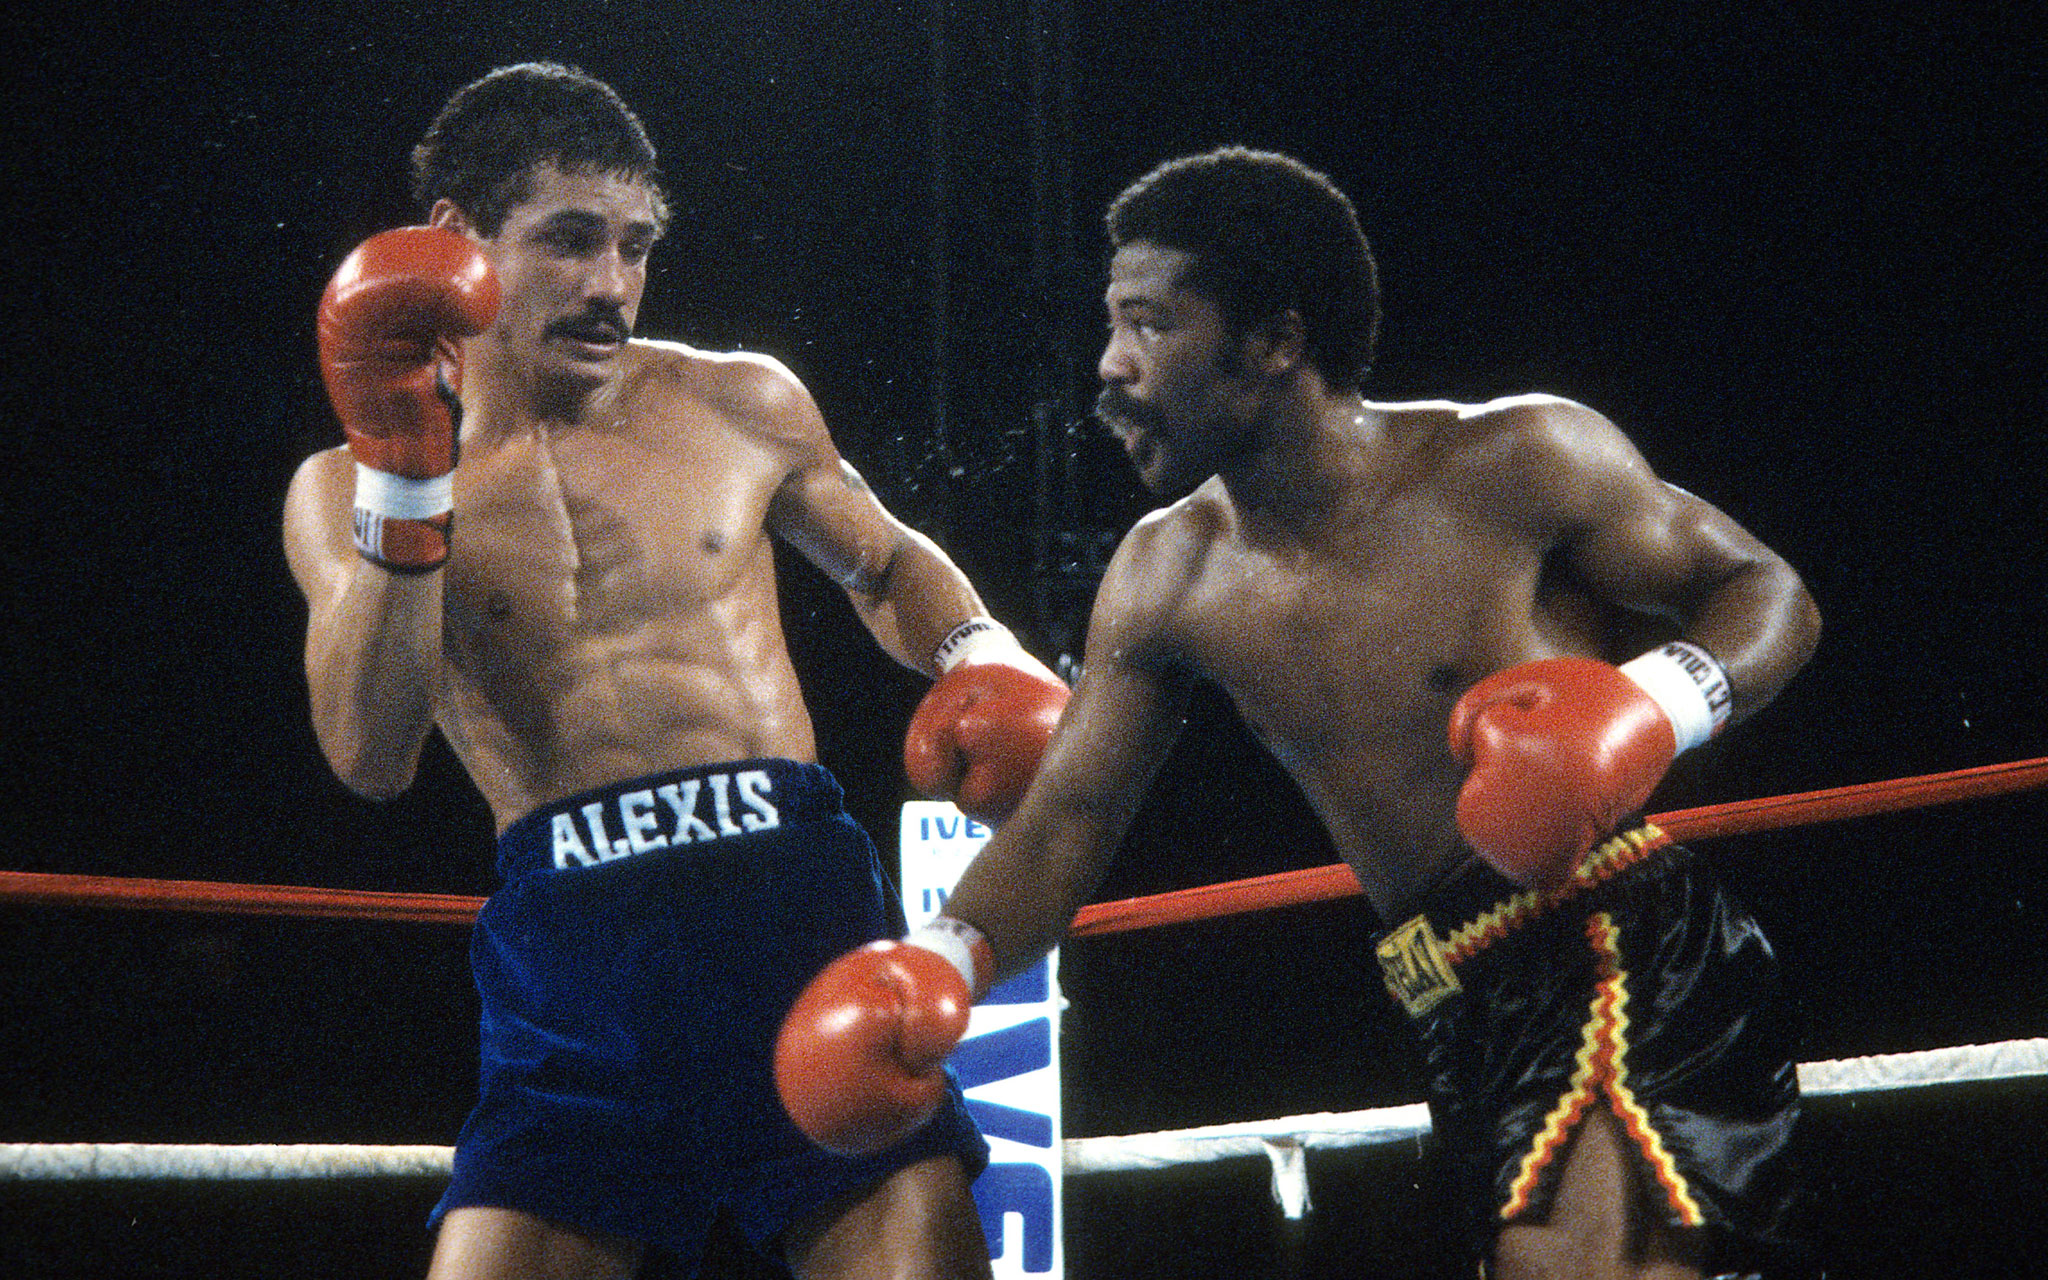 """Arguello Pryor - Alexis """"The Thin Man"""" Arguello: A Class Act in and Out of the Ring"""